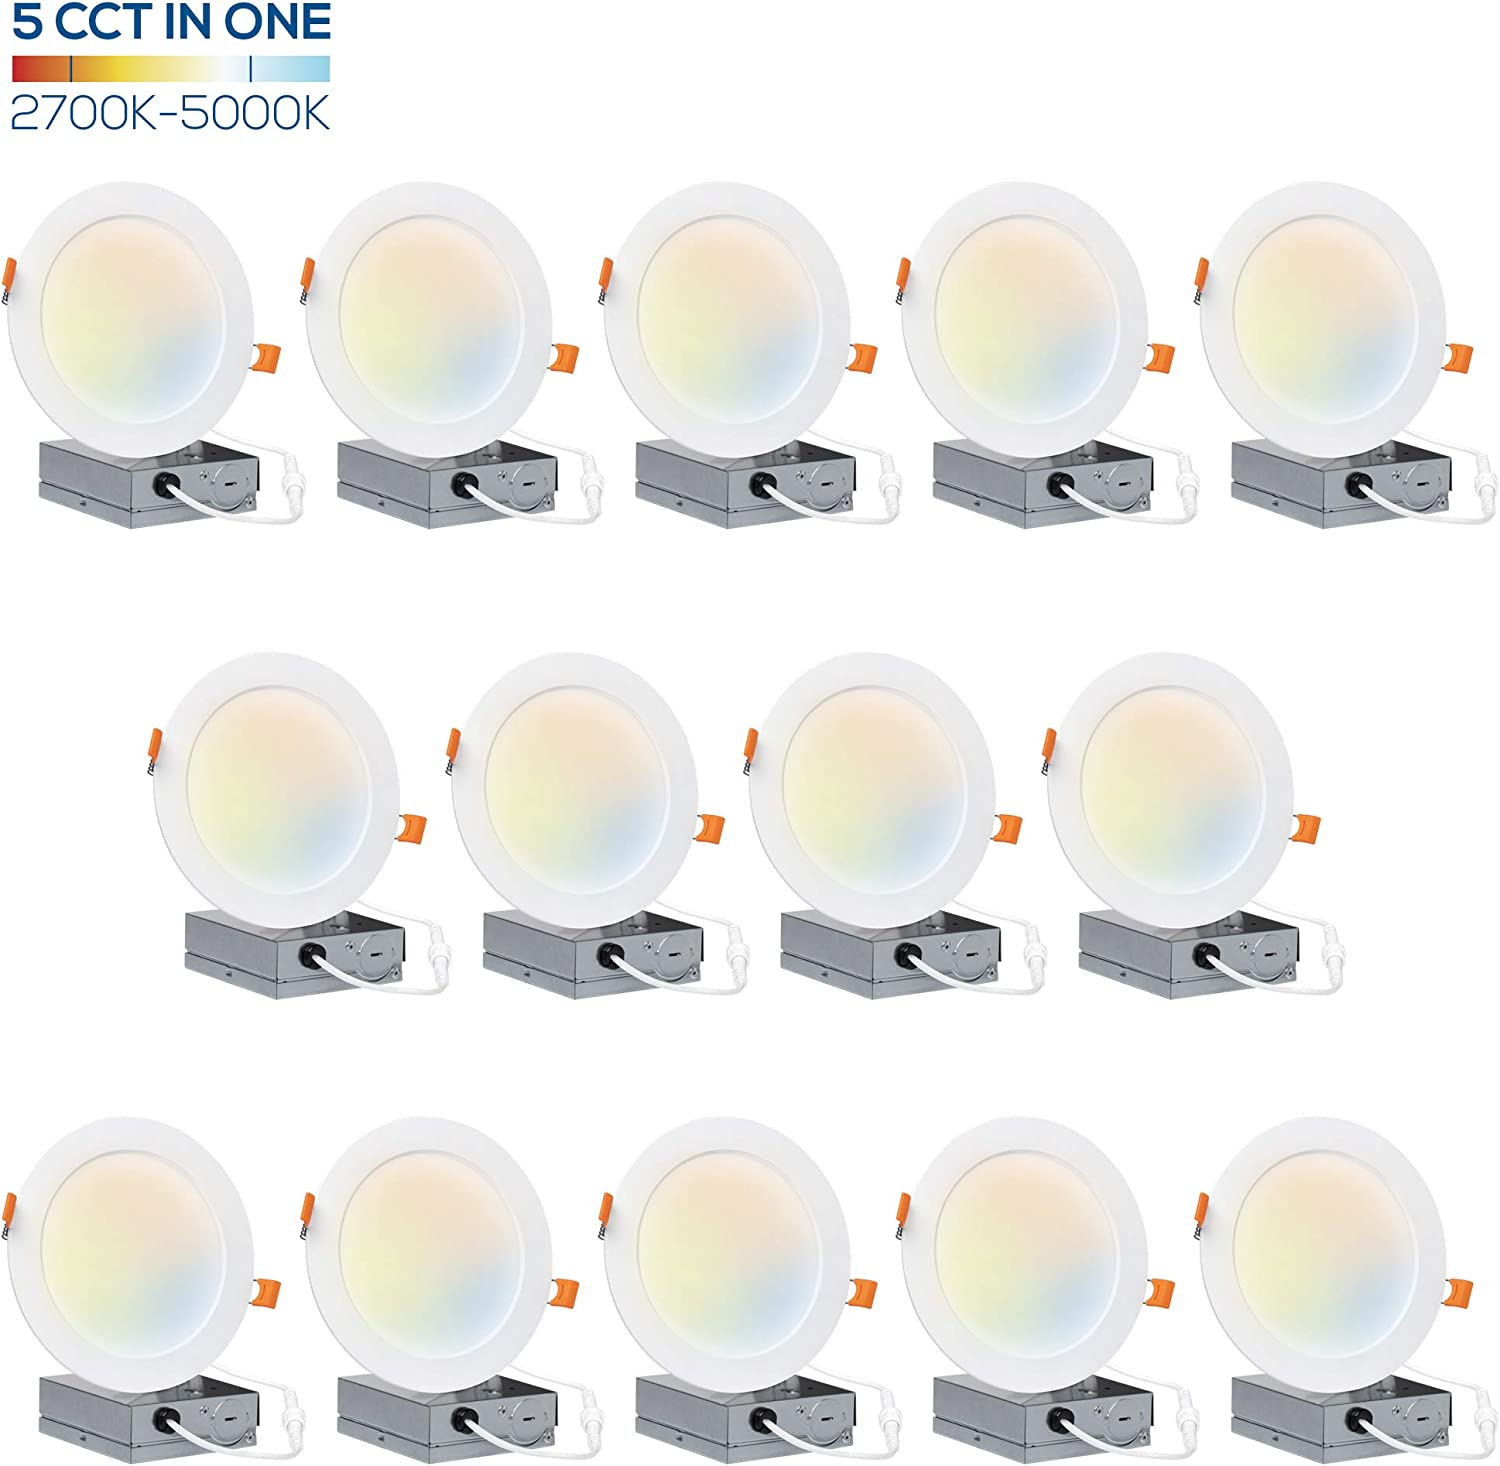 Hyperikon 6 inch LED Recessed Lighting Selectable Color Temperature 5CCT 2700K-5000K, 14W Slim Downlight with Junction Box, UL, Energy Star, 14 Pack